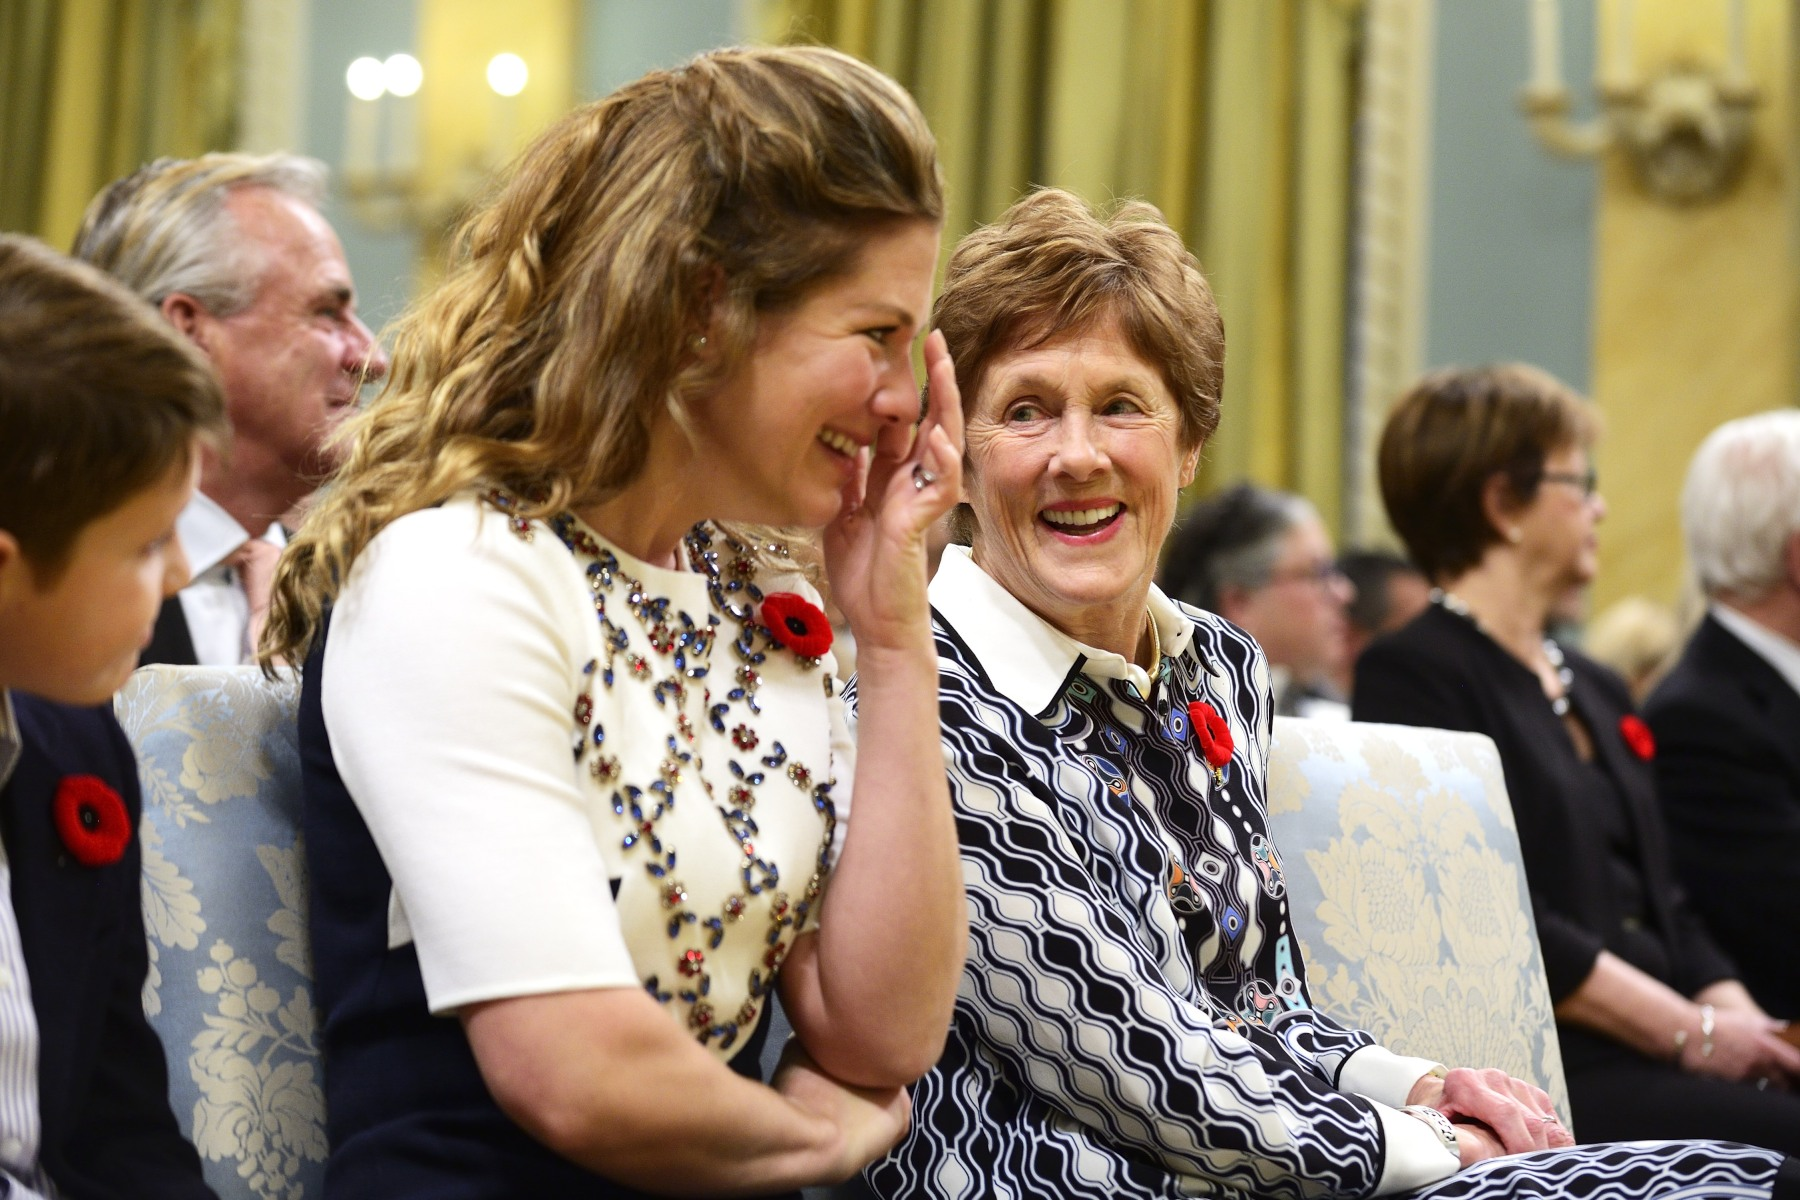 The ceremony was filled with emotion for Mrs. Grégoire-Trudeau.